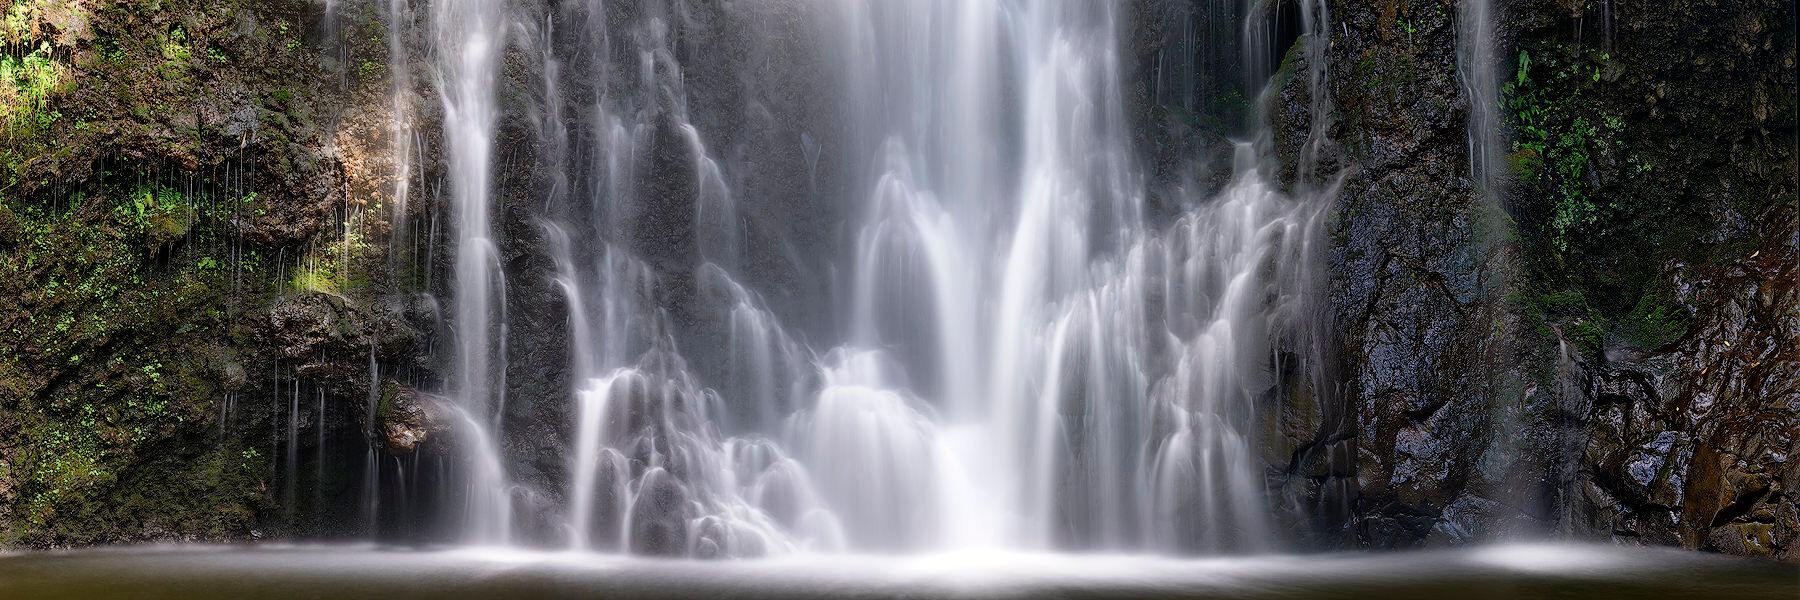 panorama at the base of Wailua Falls near Hana on the island of Maui with beautiful misty water due to a longer exposure